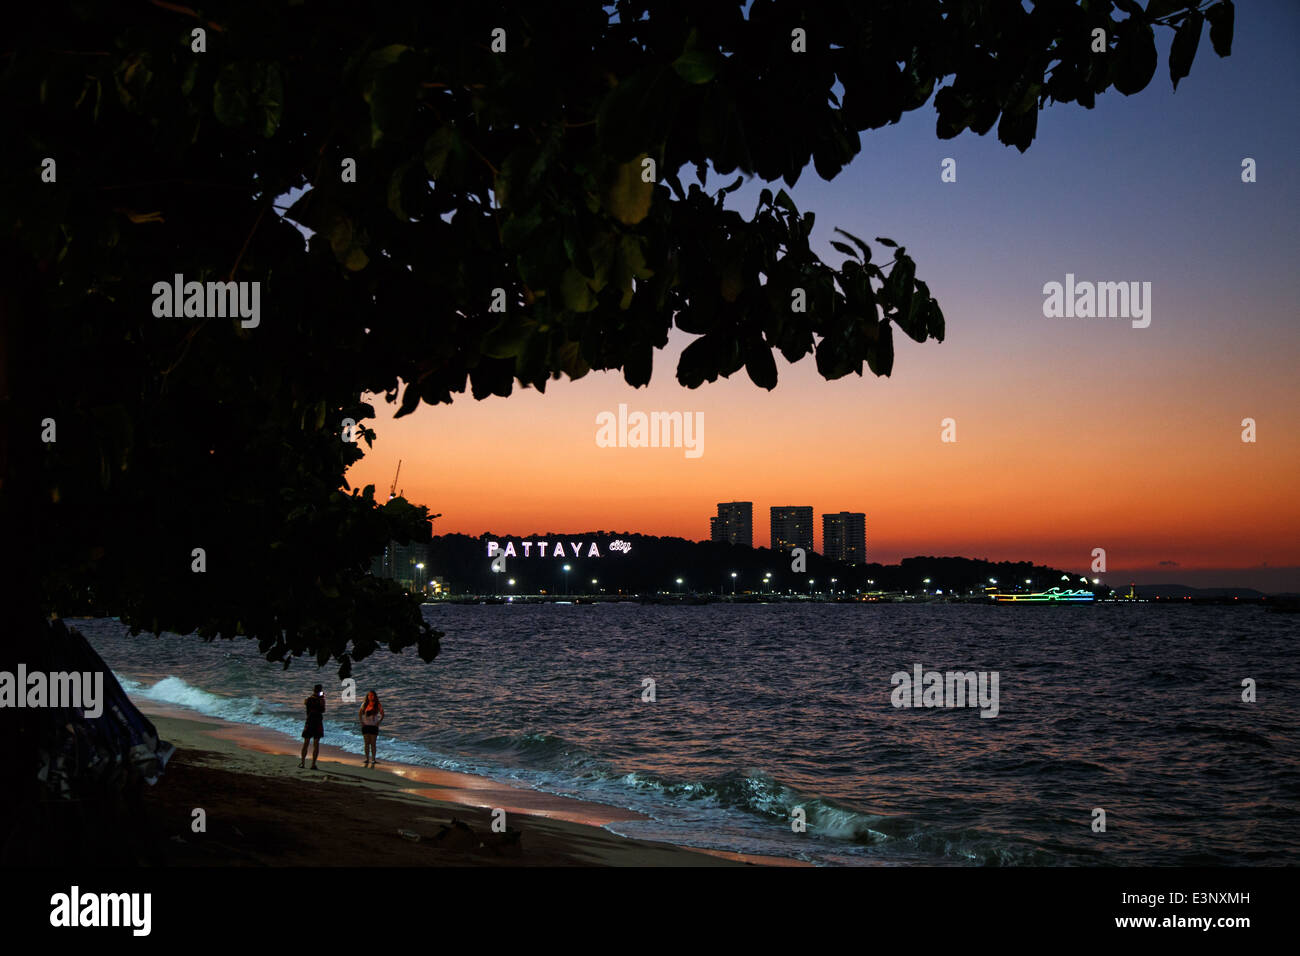 Tourists on the beach during sunset with the Pattaya neon sign in the background in Pattaya, Thailand - Stock Image